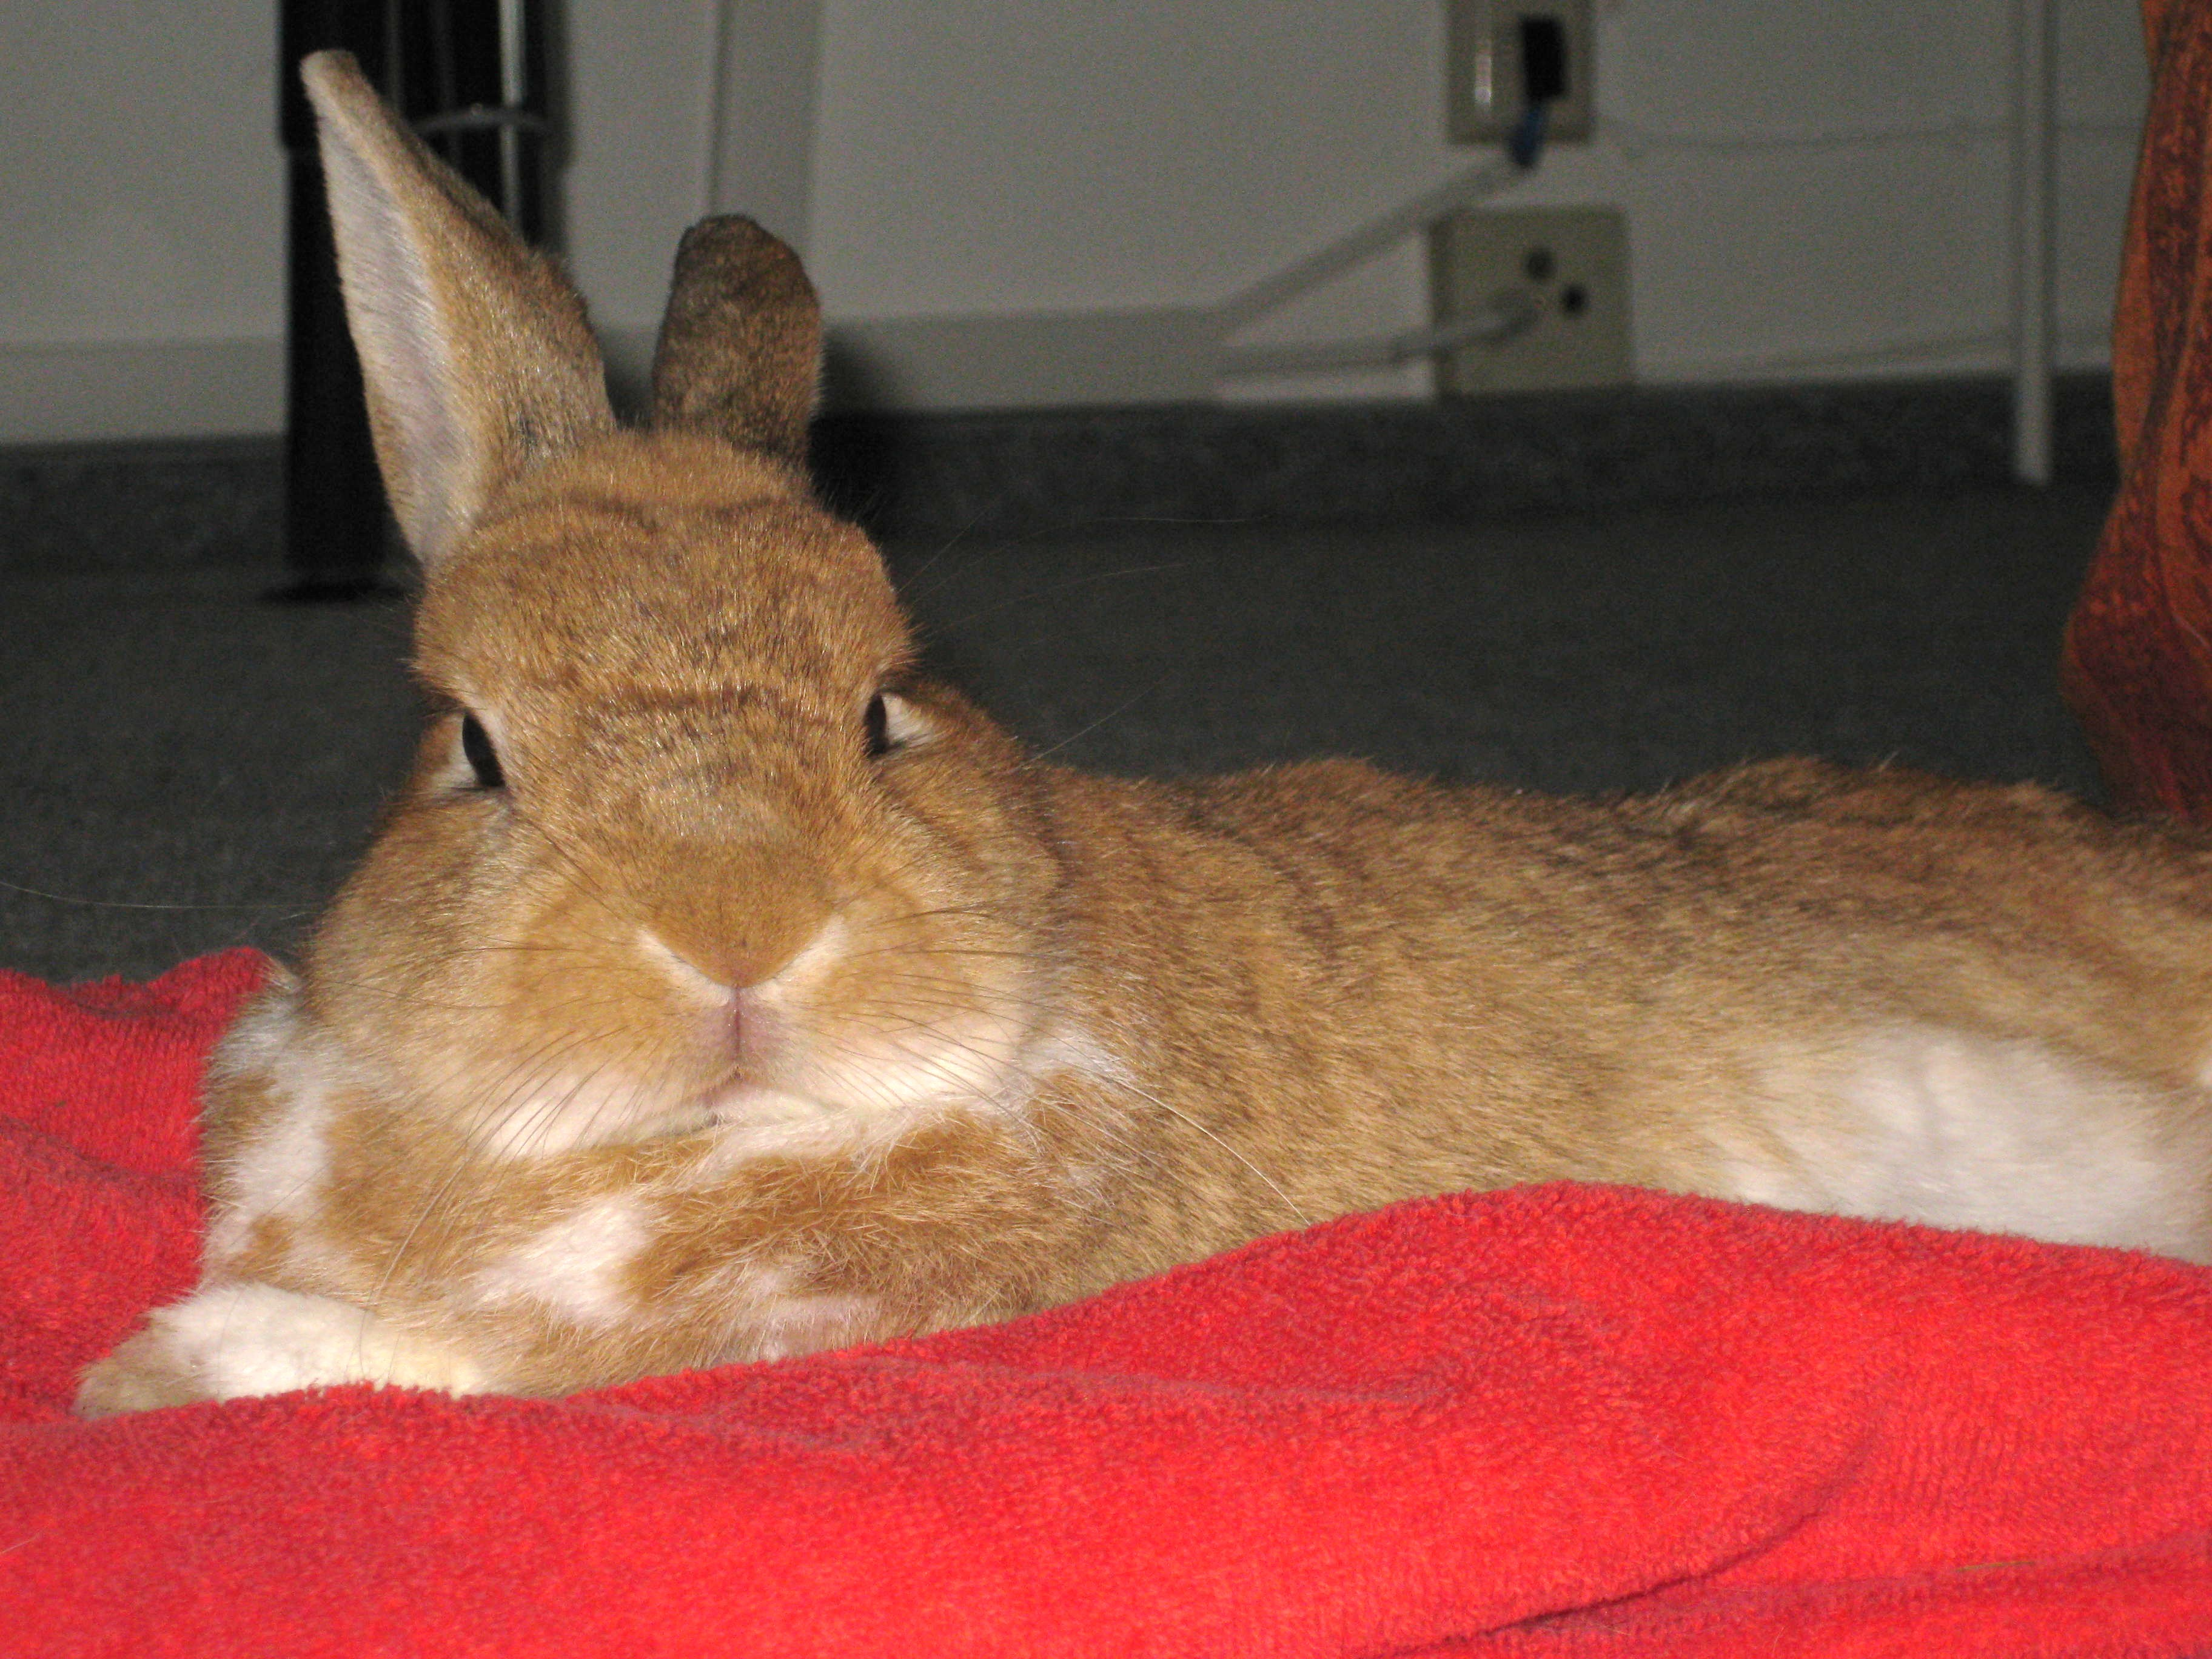 Drawn rabbit healing Lying by very Support on